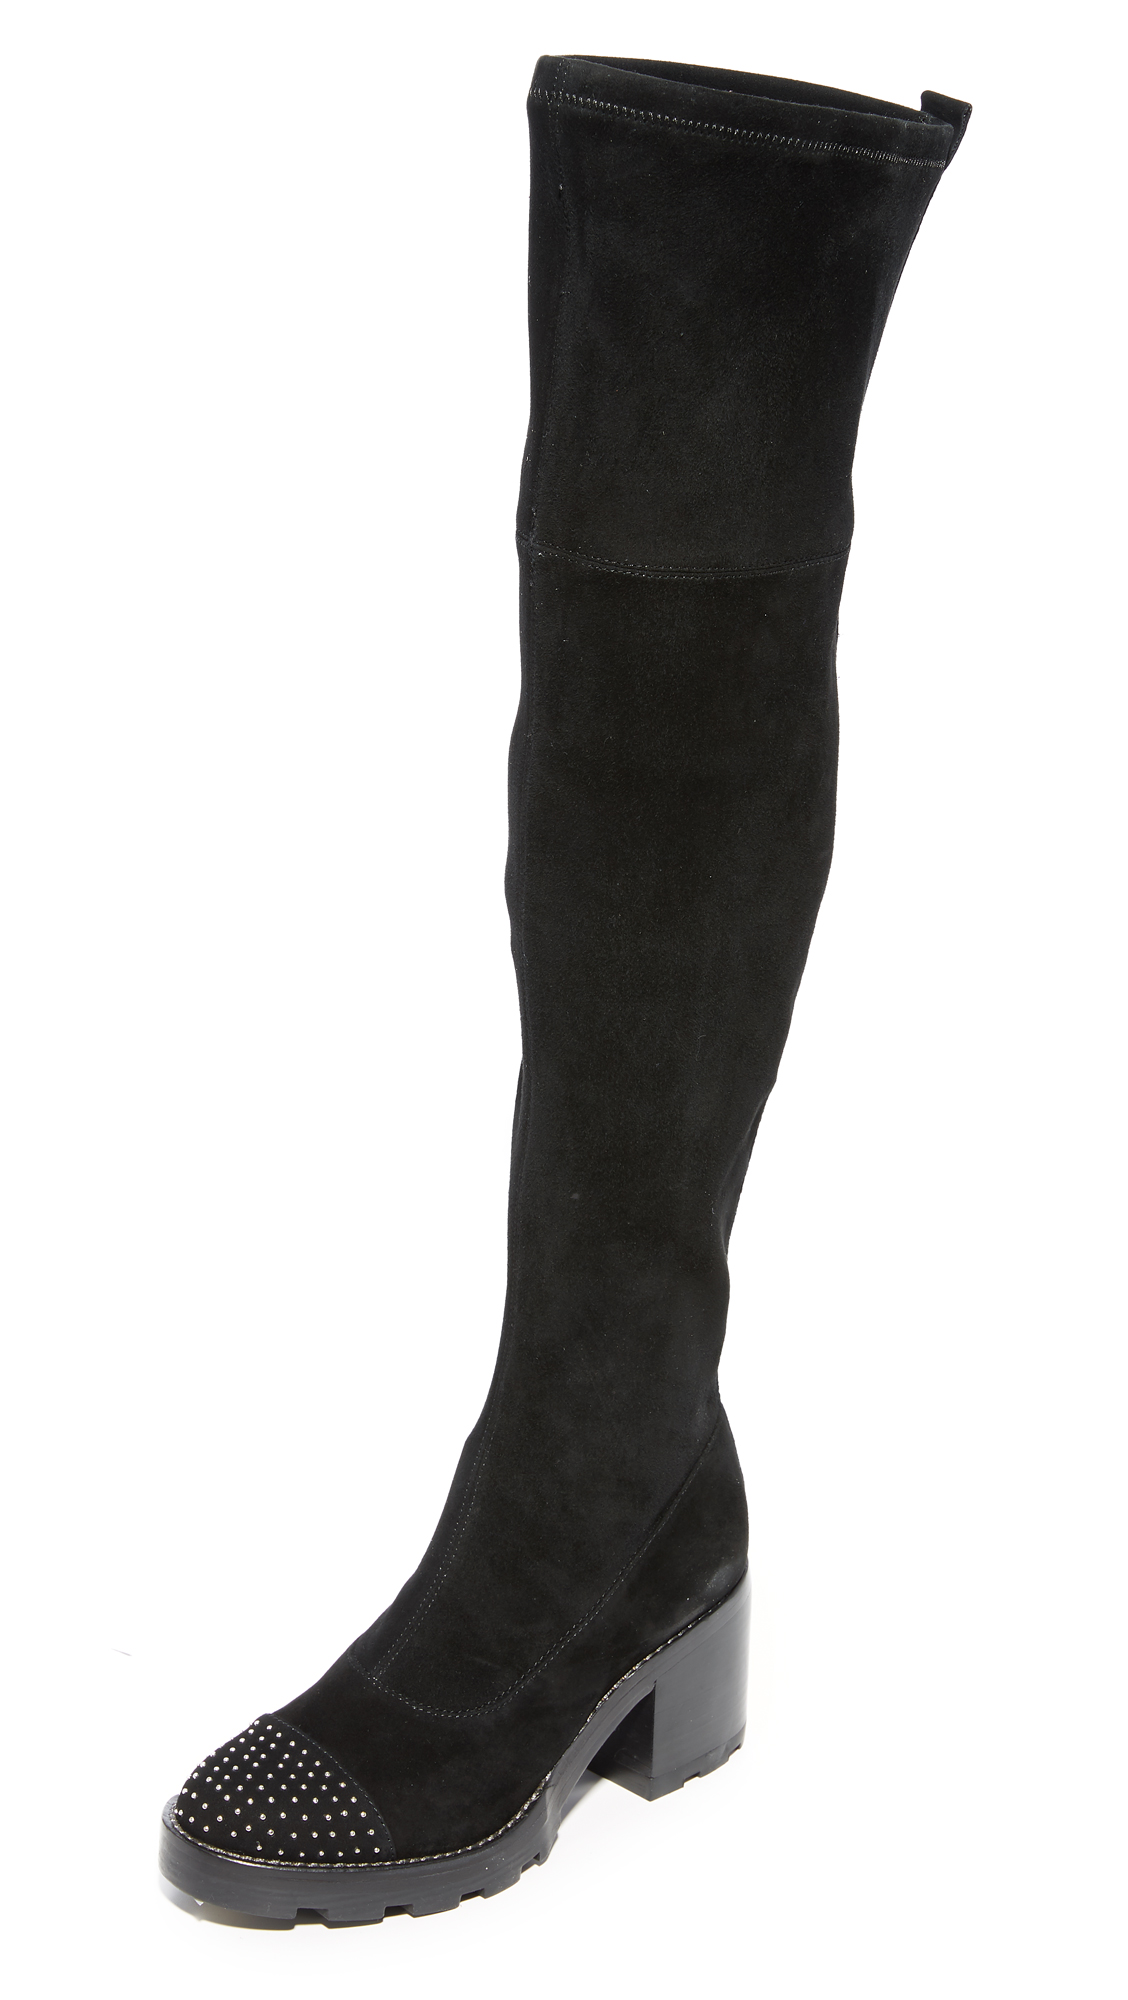 Sigerson Morrison Gemma Thigh High Boots - Black